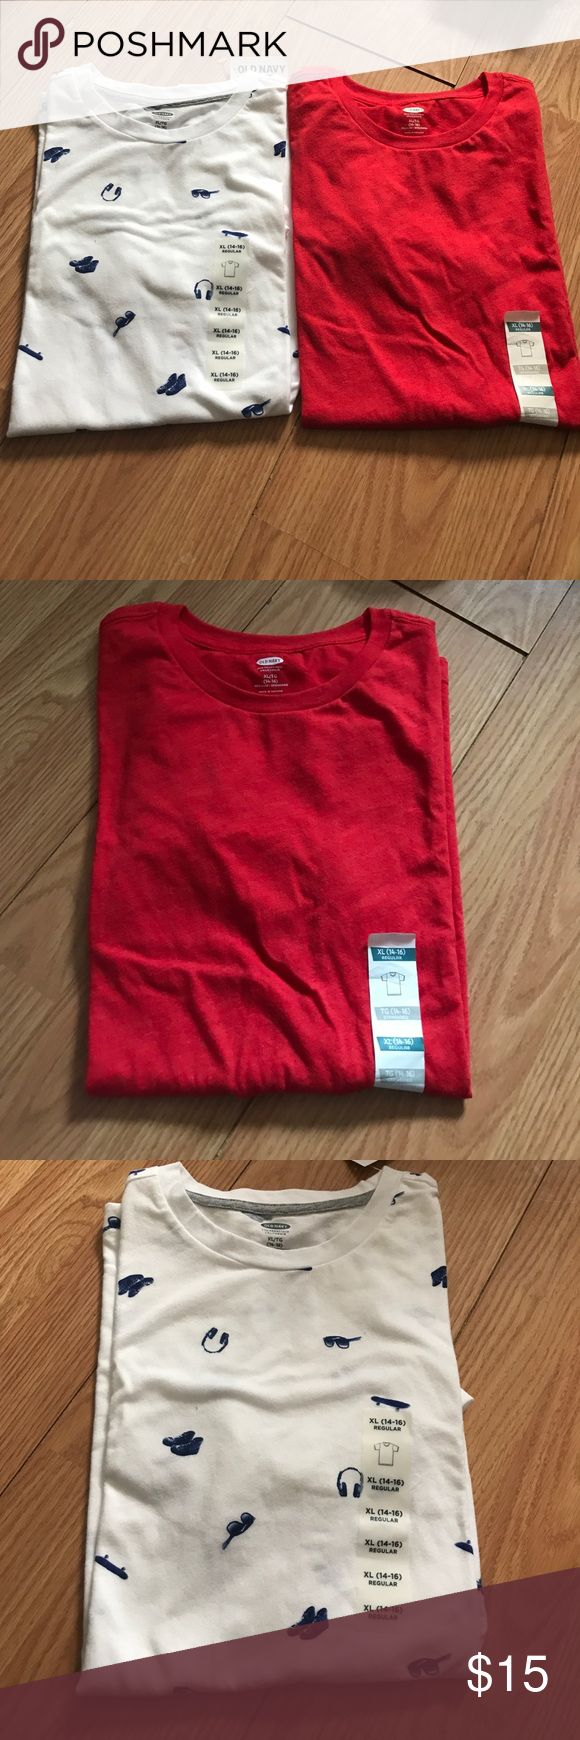 Old Navy t shirt bundle White with pattern is size XL (14-16) and the plain red shirt. XL. Brand new with tags oldNavy Shirts & Tops Tees - Short Sleeve